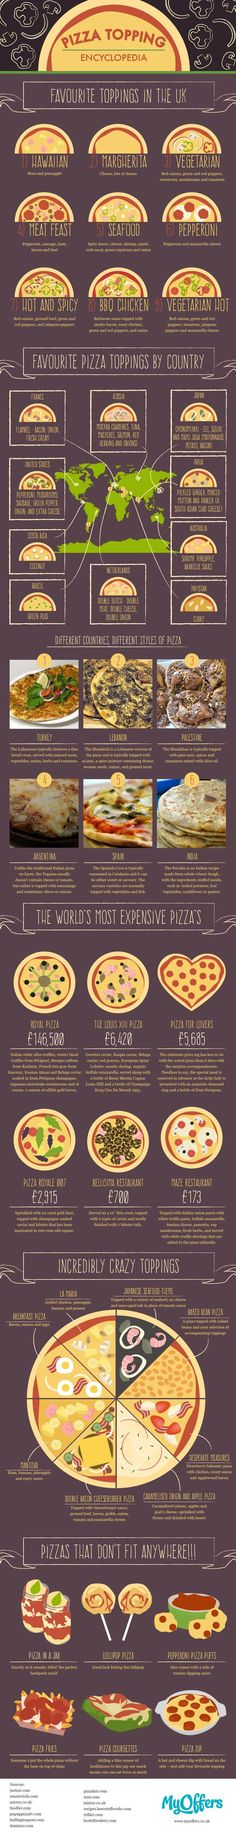 Food infographic The Ultimate Pizza Topping Encyclopedia #Infographic